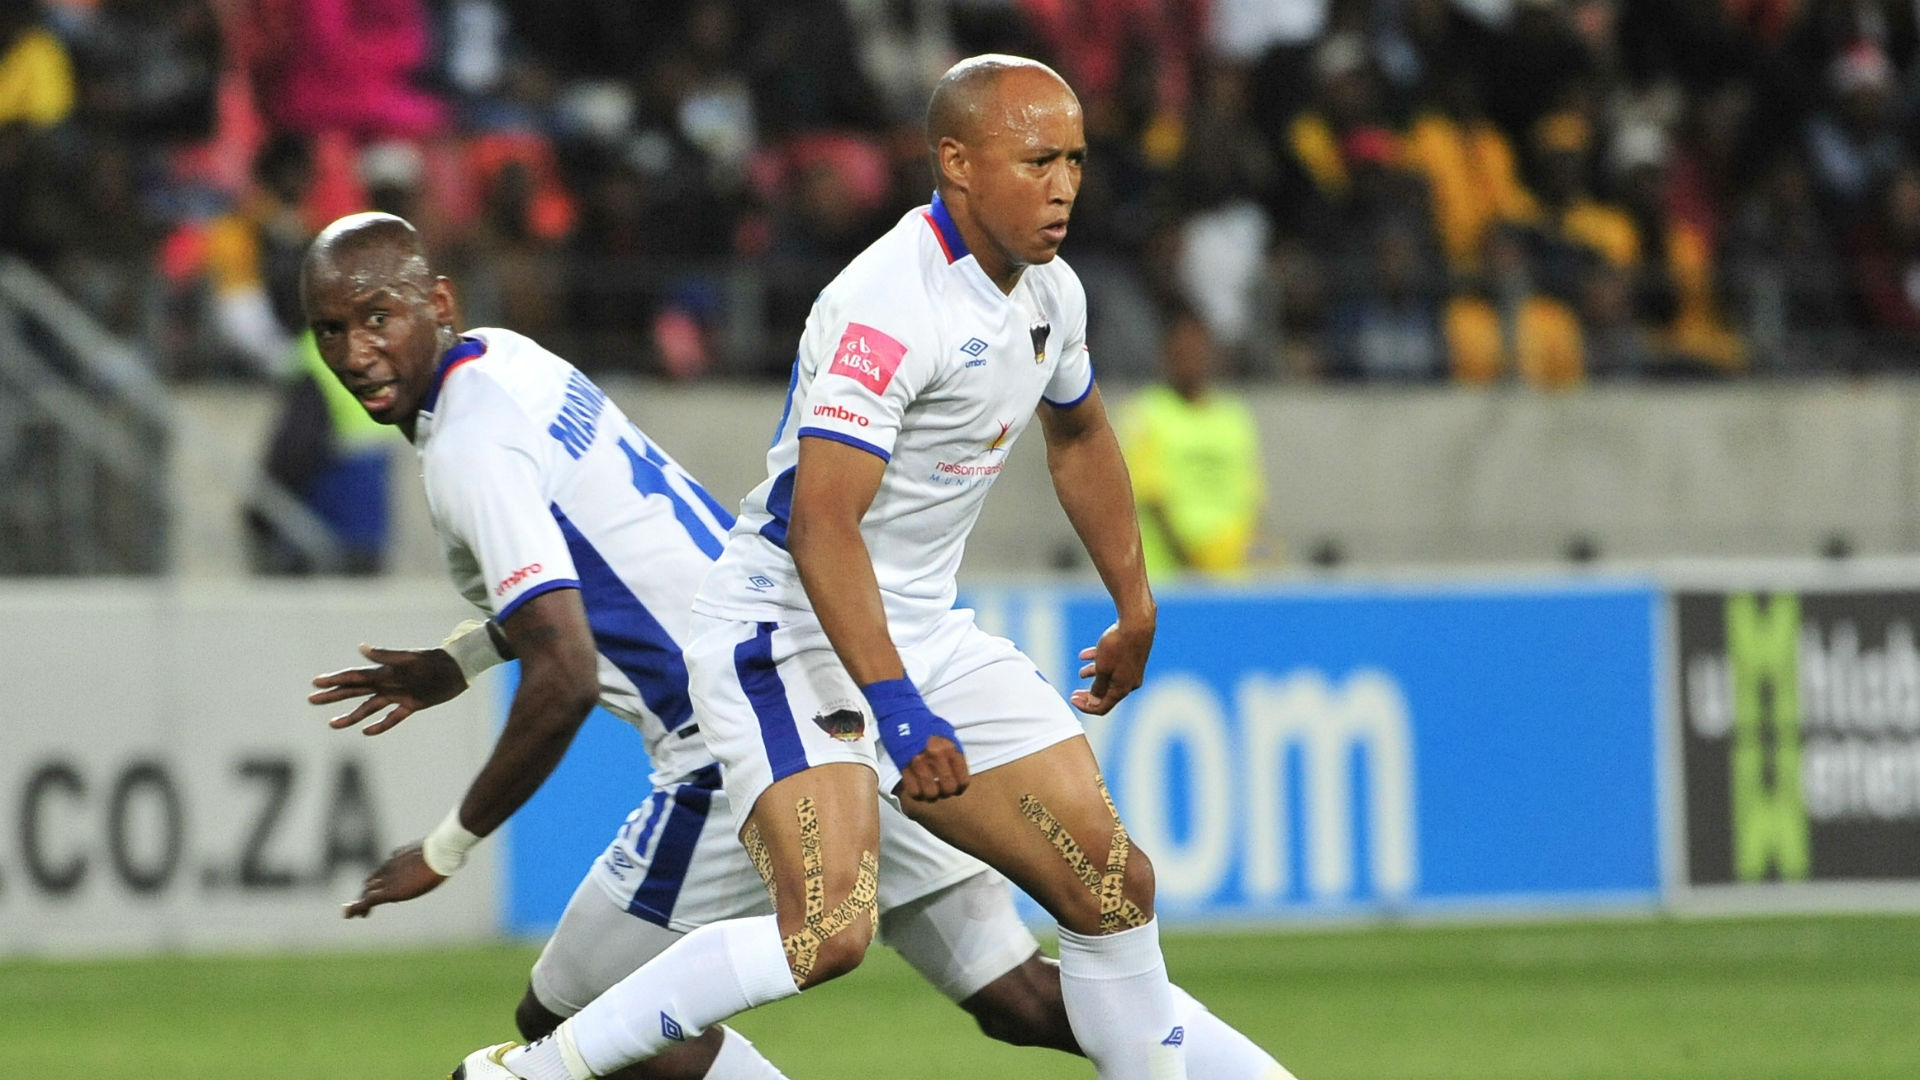 Chippa United Kurt Lentjies and Mark Mayambela, December 2017